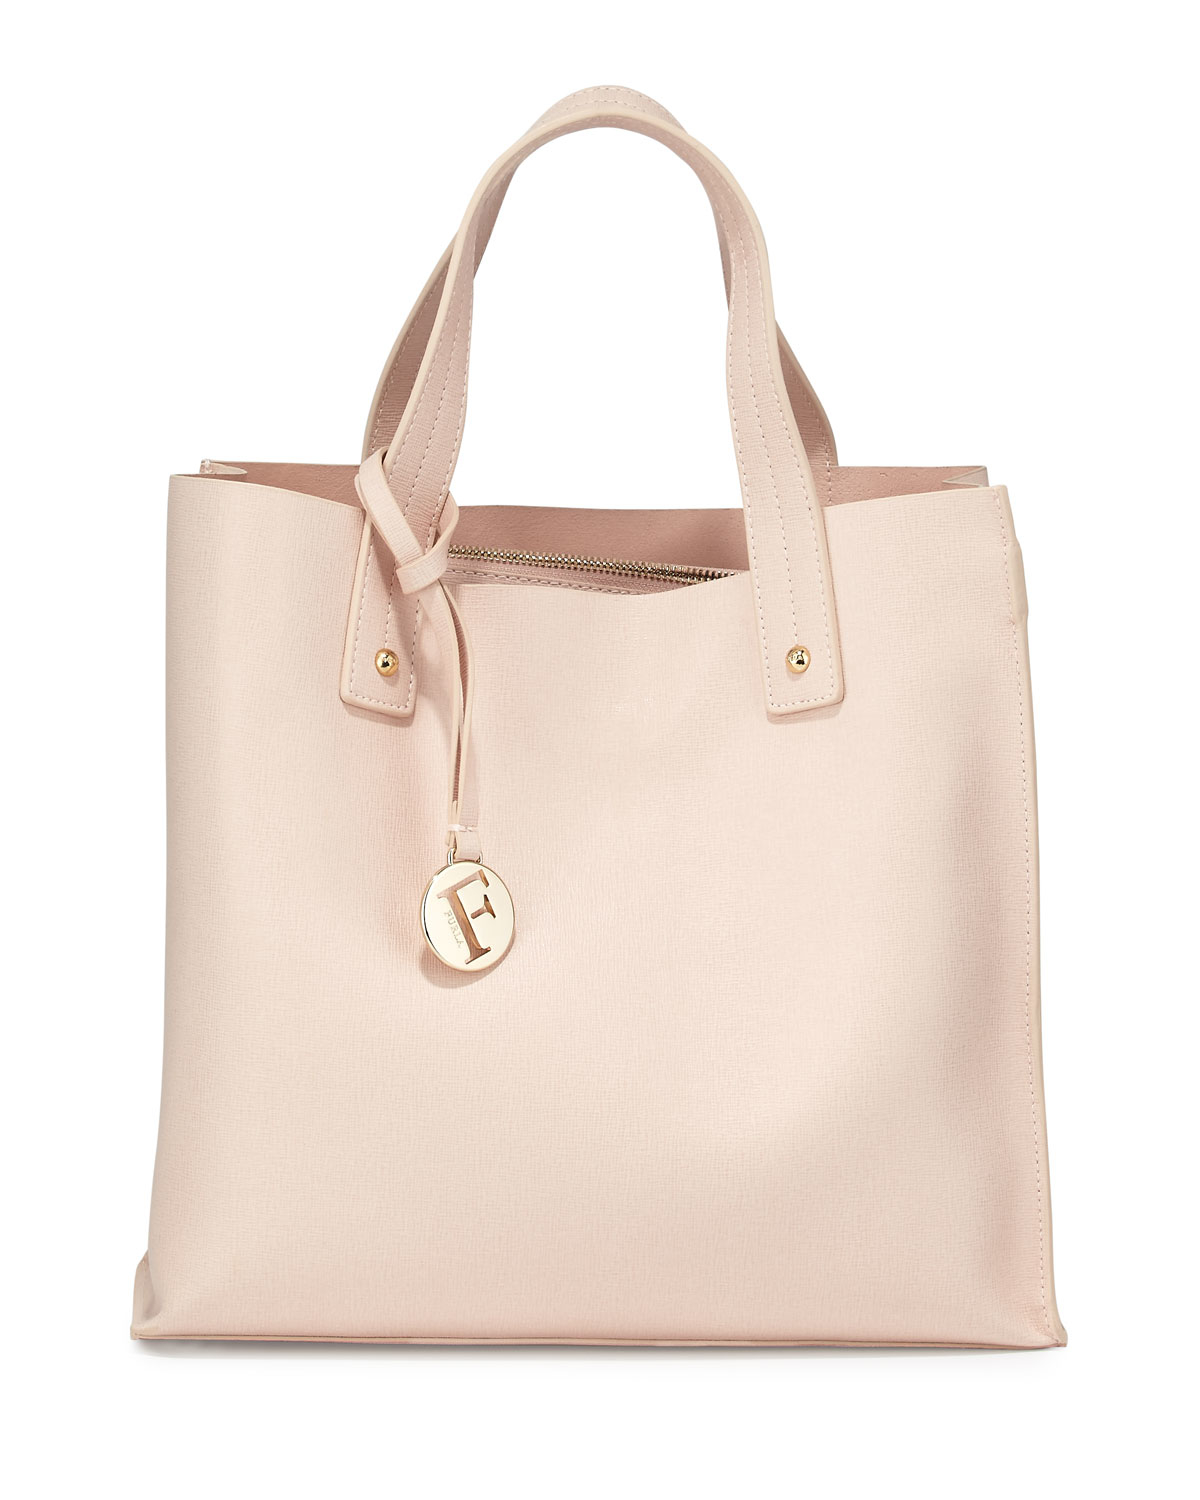 Furla Musa Medium Leather Tote Bag in Pink | Lyst